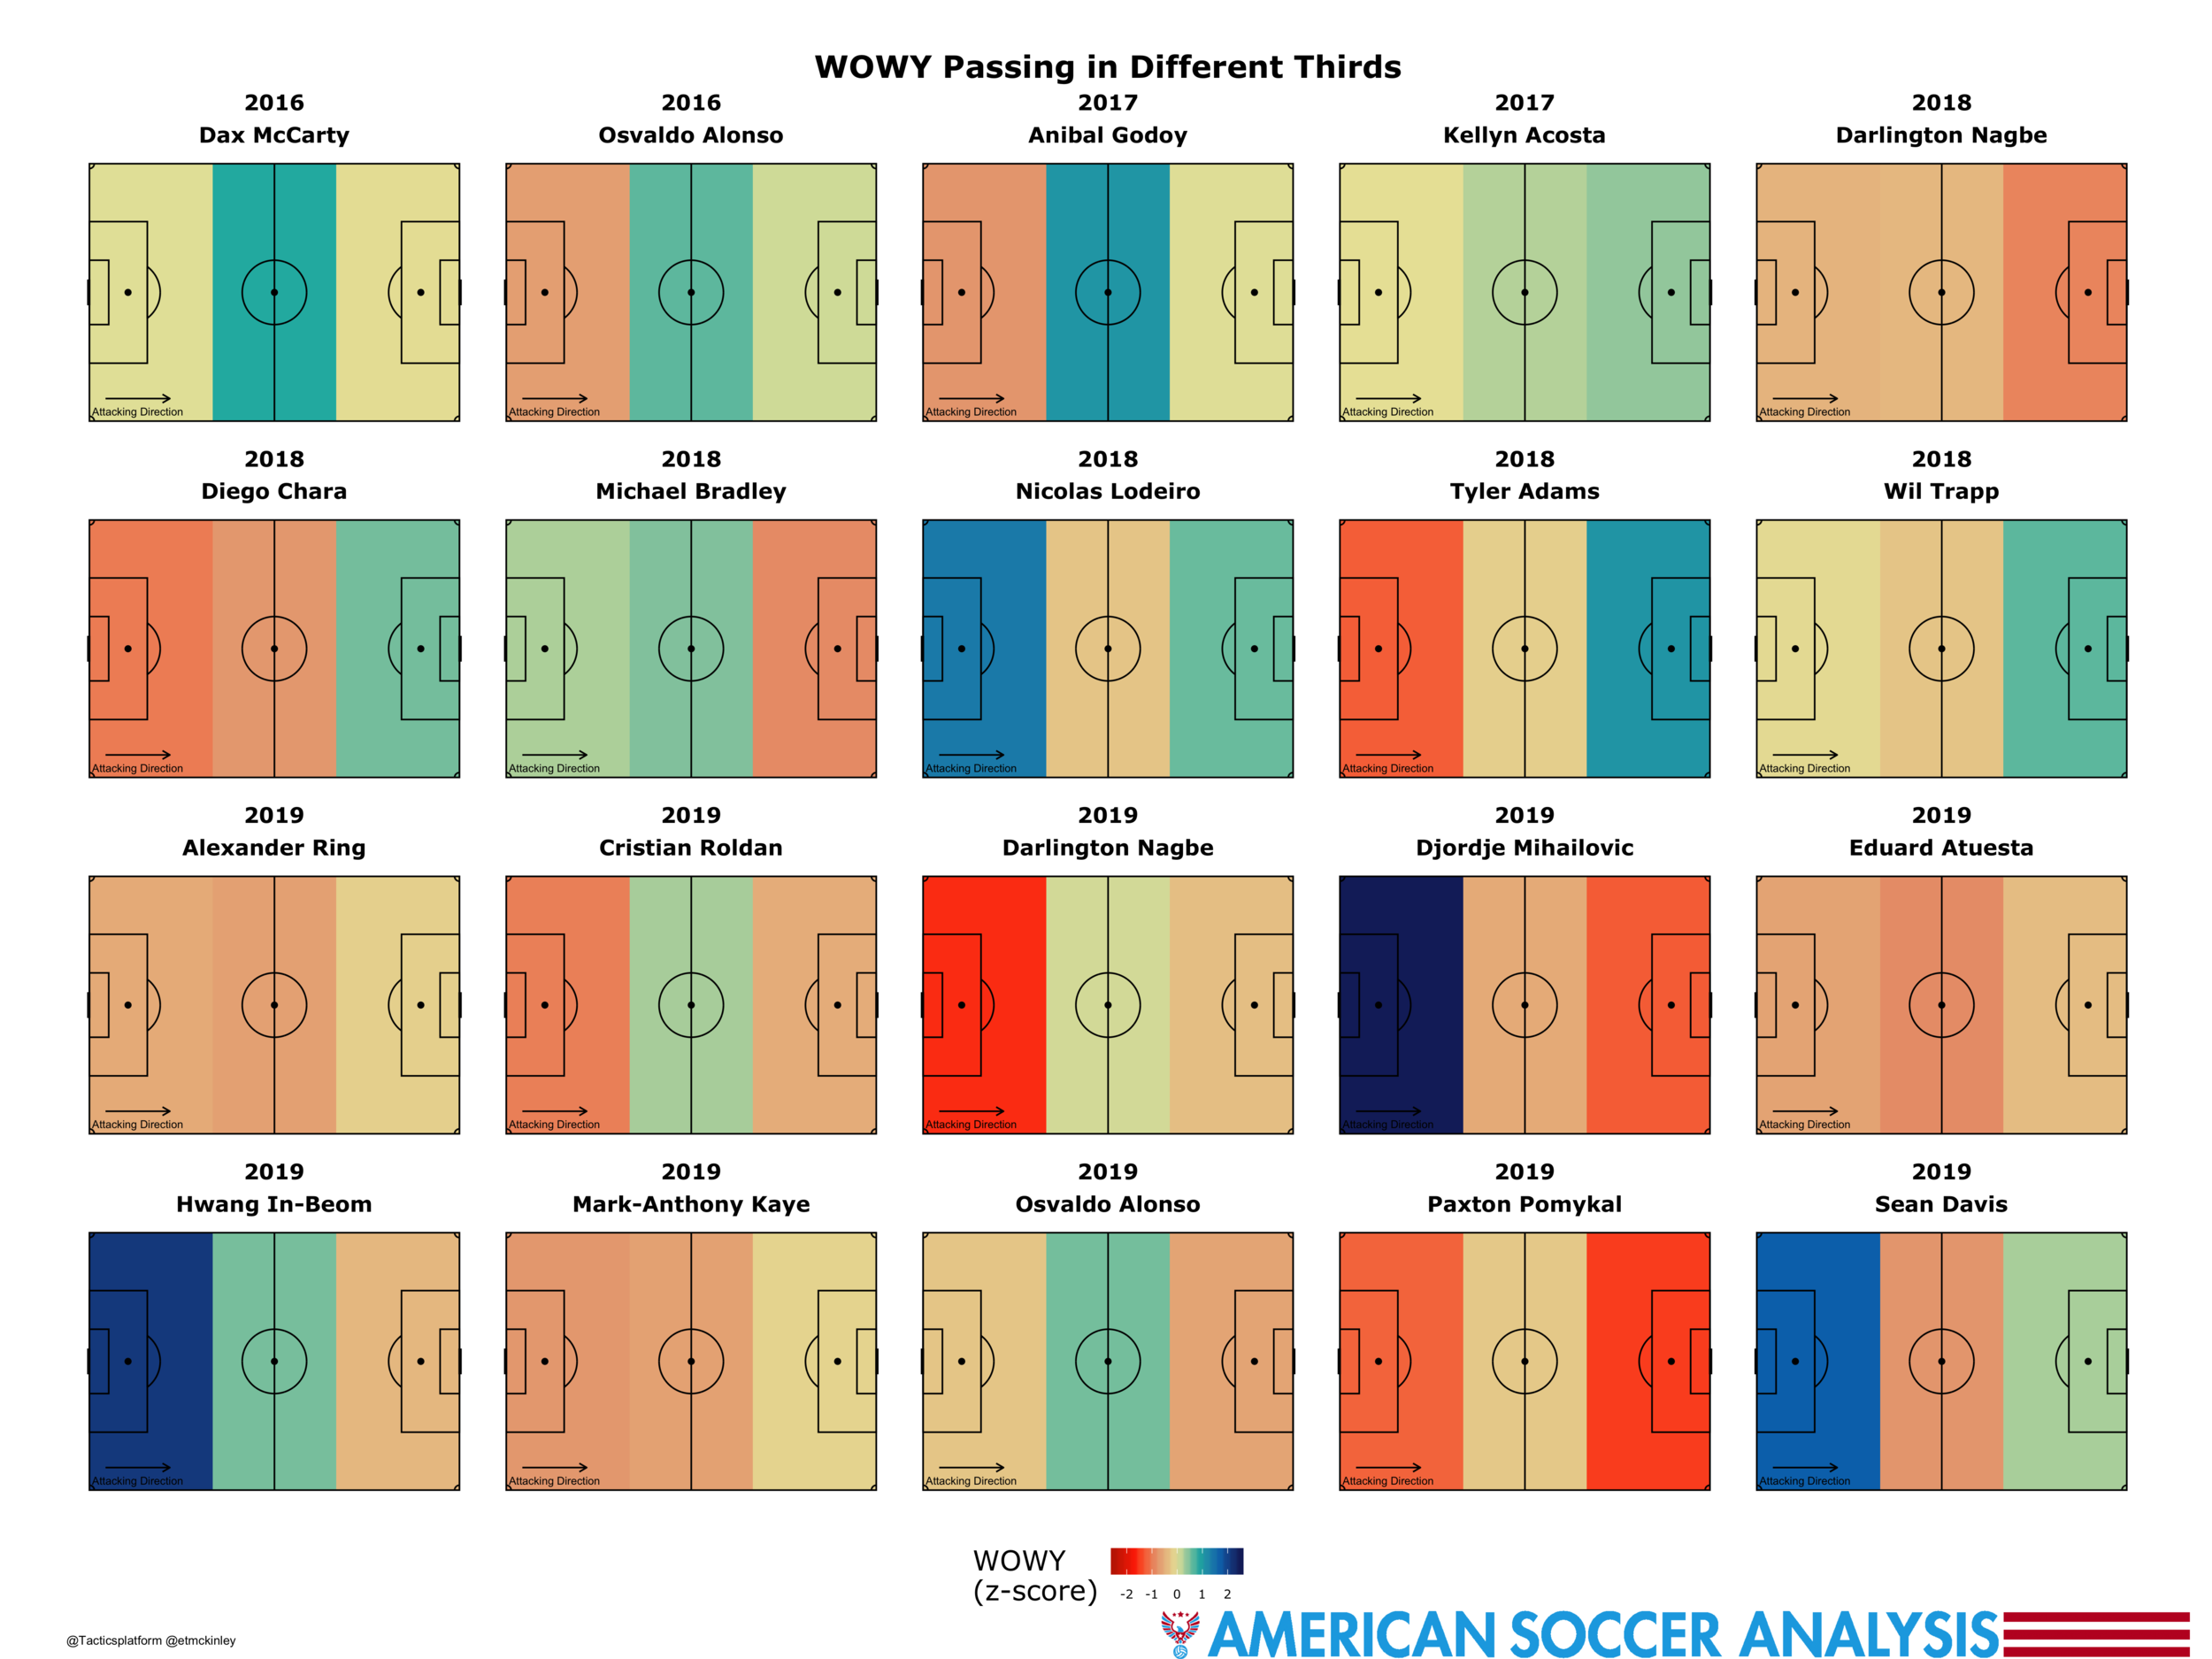 Blue means they're above average in that third of the field. Red means they're below average.